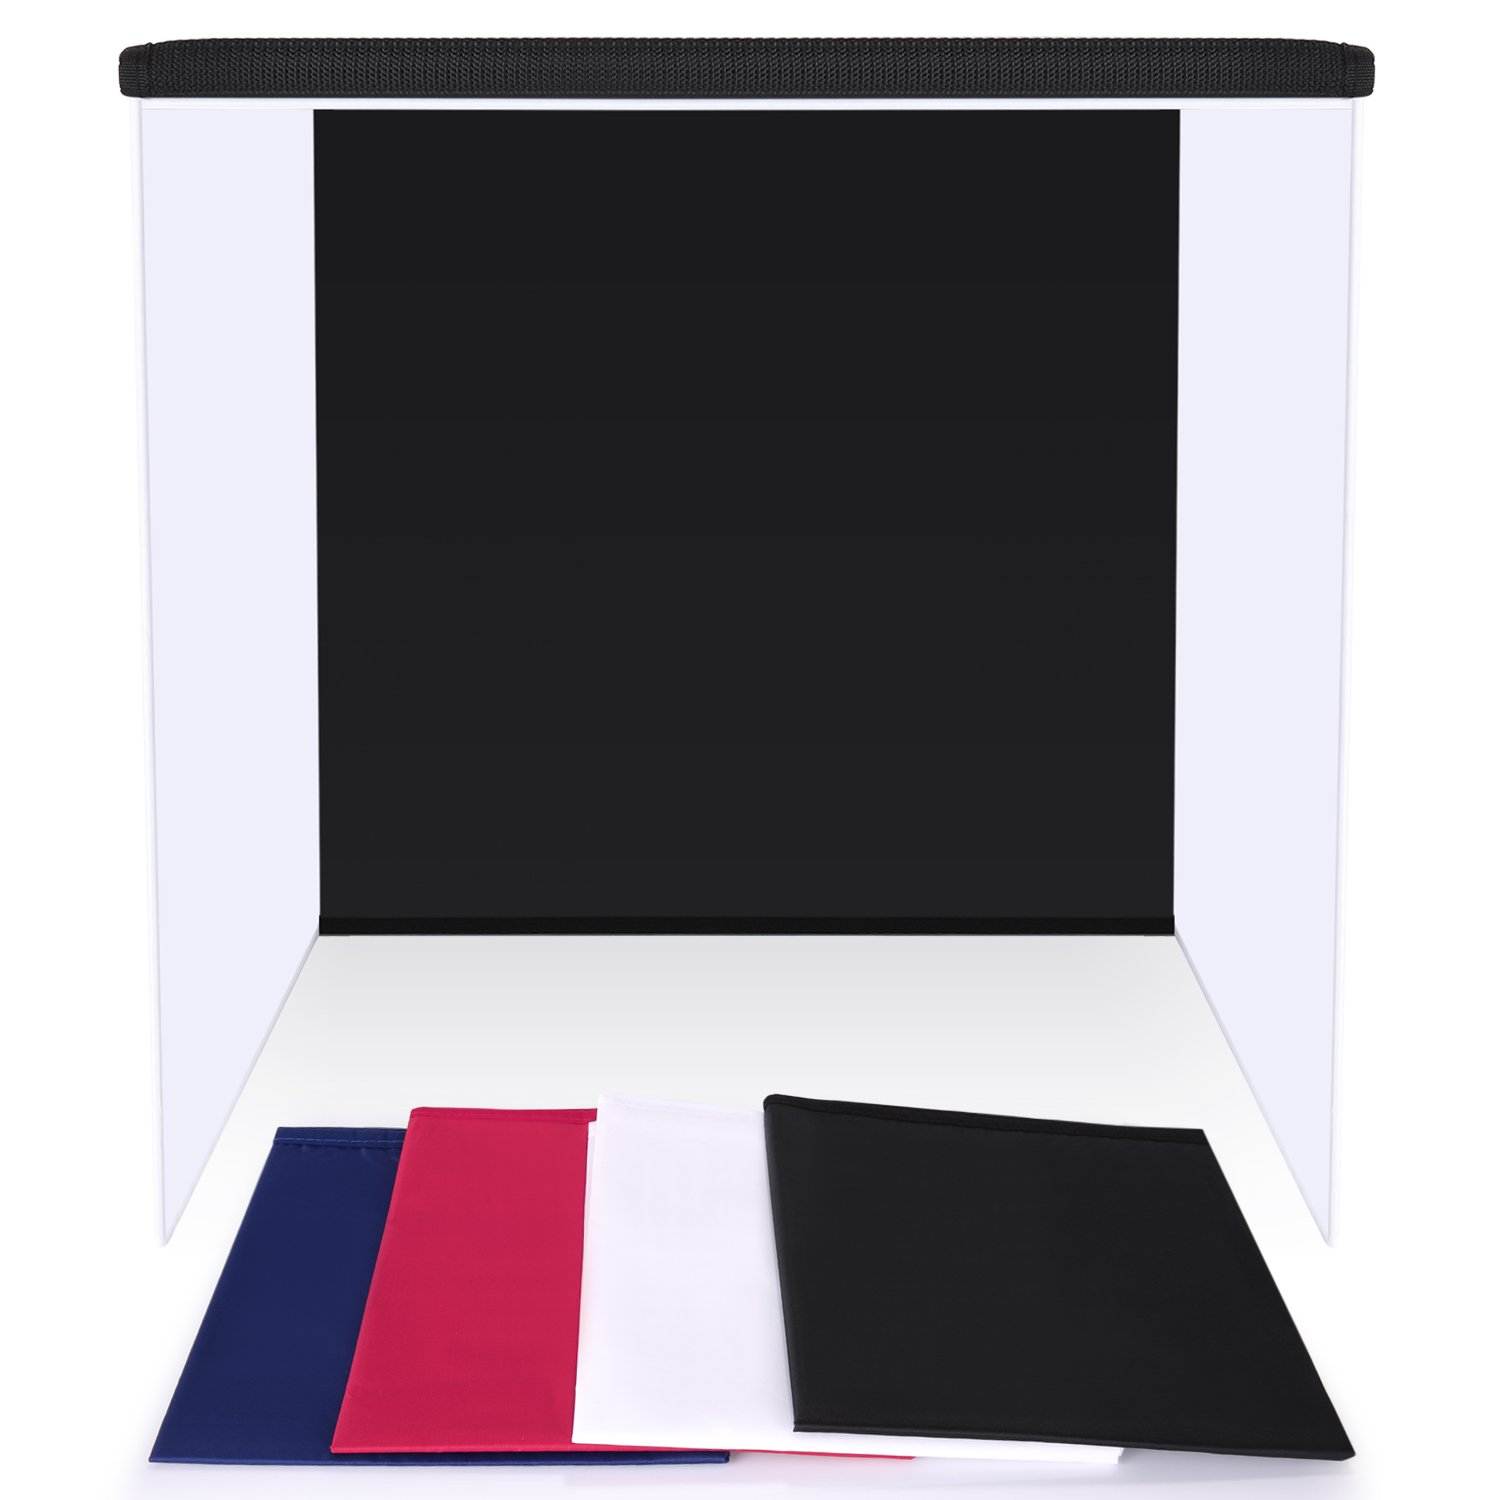 Neewer 20''x20''/50x50cm Table Top Photo Photography Light Tent Studio Square Light Box with 4 Backgrounds by Neewer (Image #2)